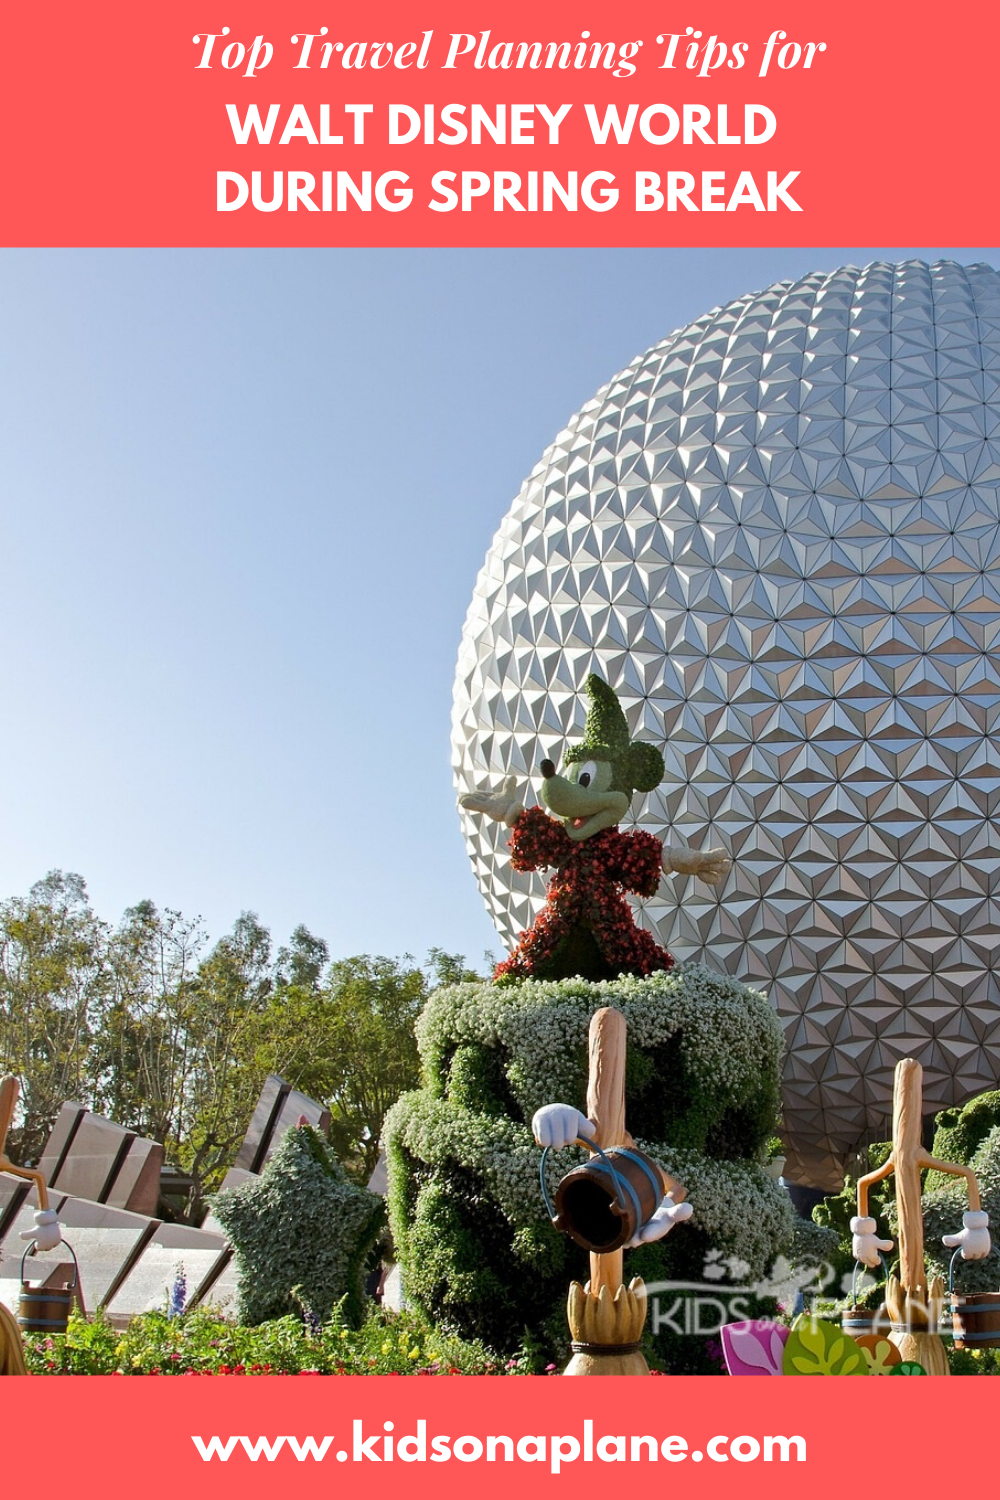 Disney World During Spring Break - Our Top Travel Tips for Families with Kids